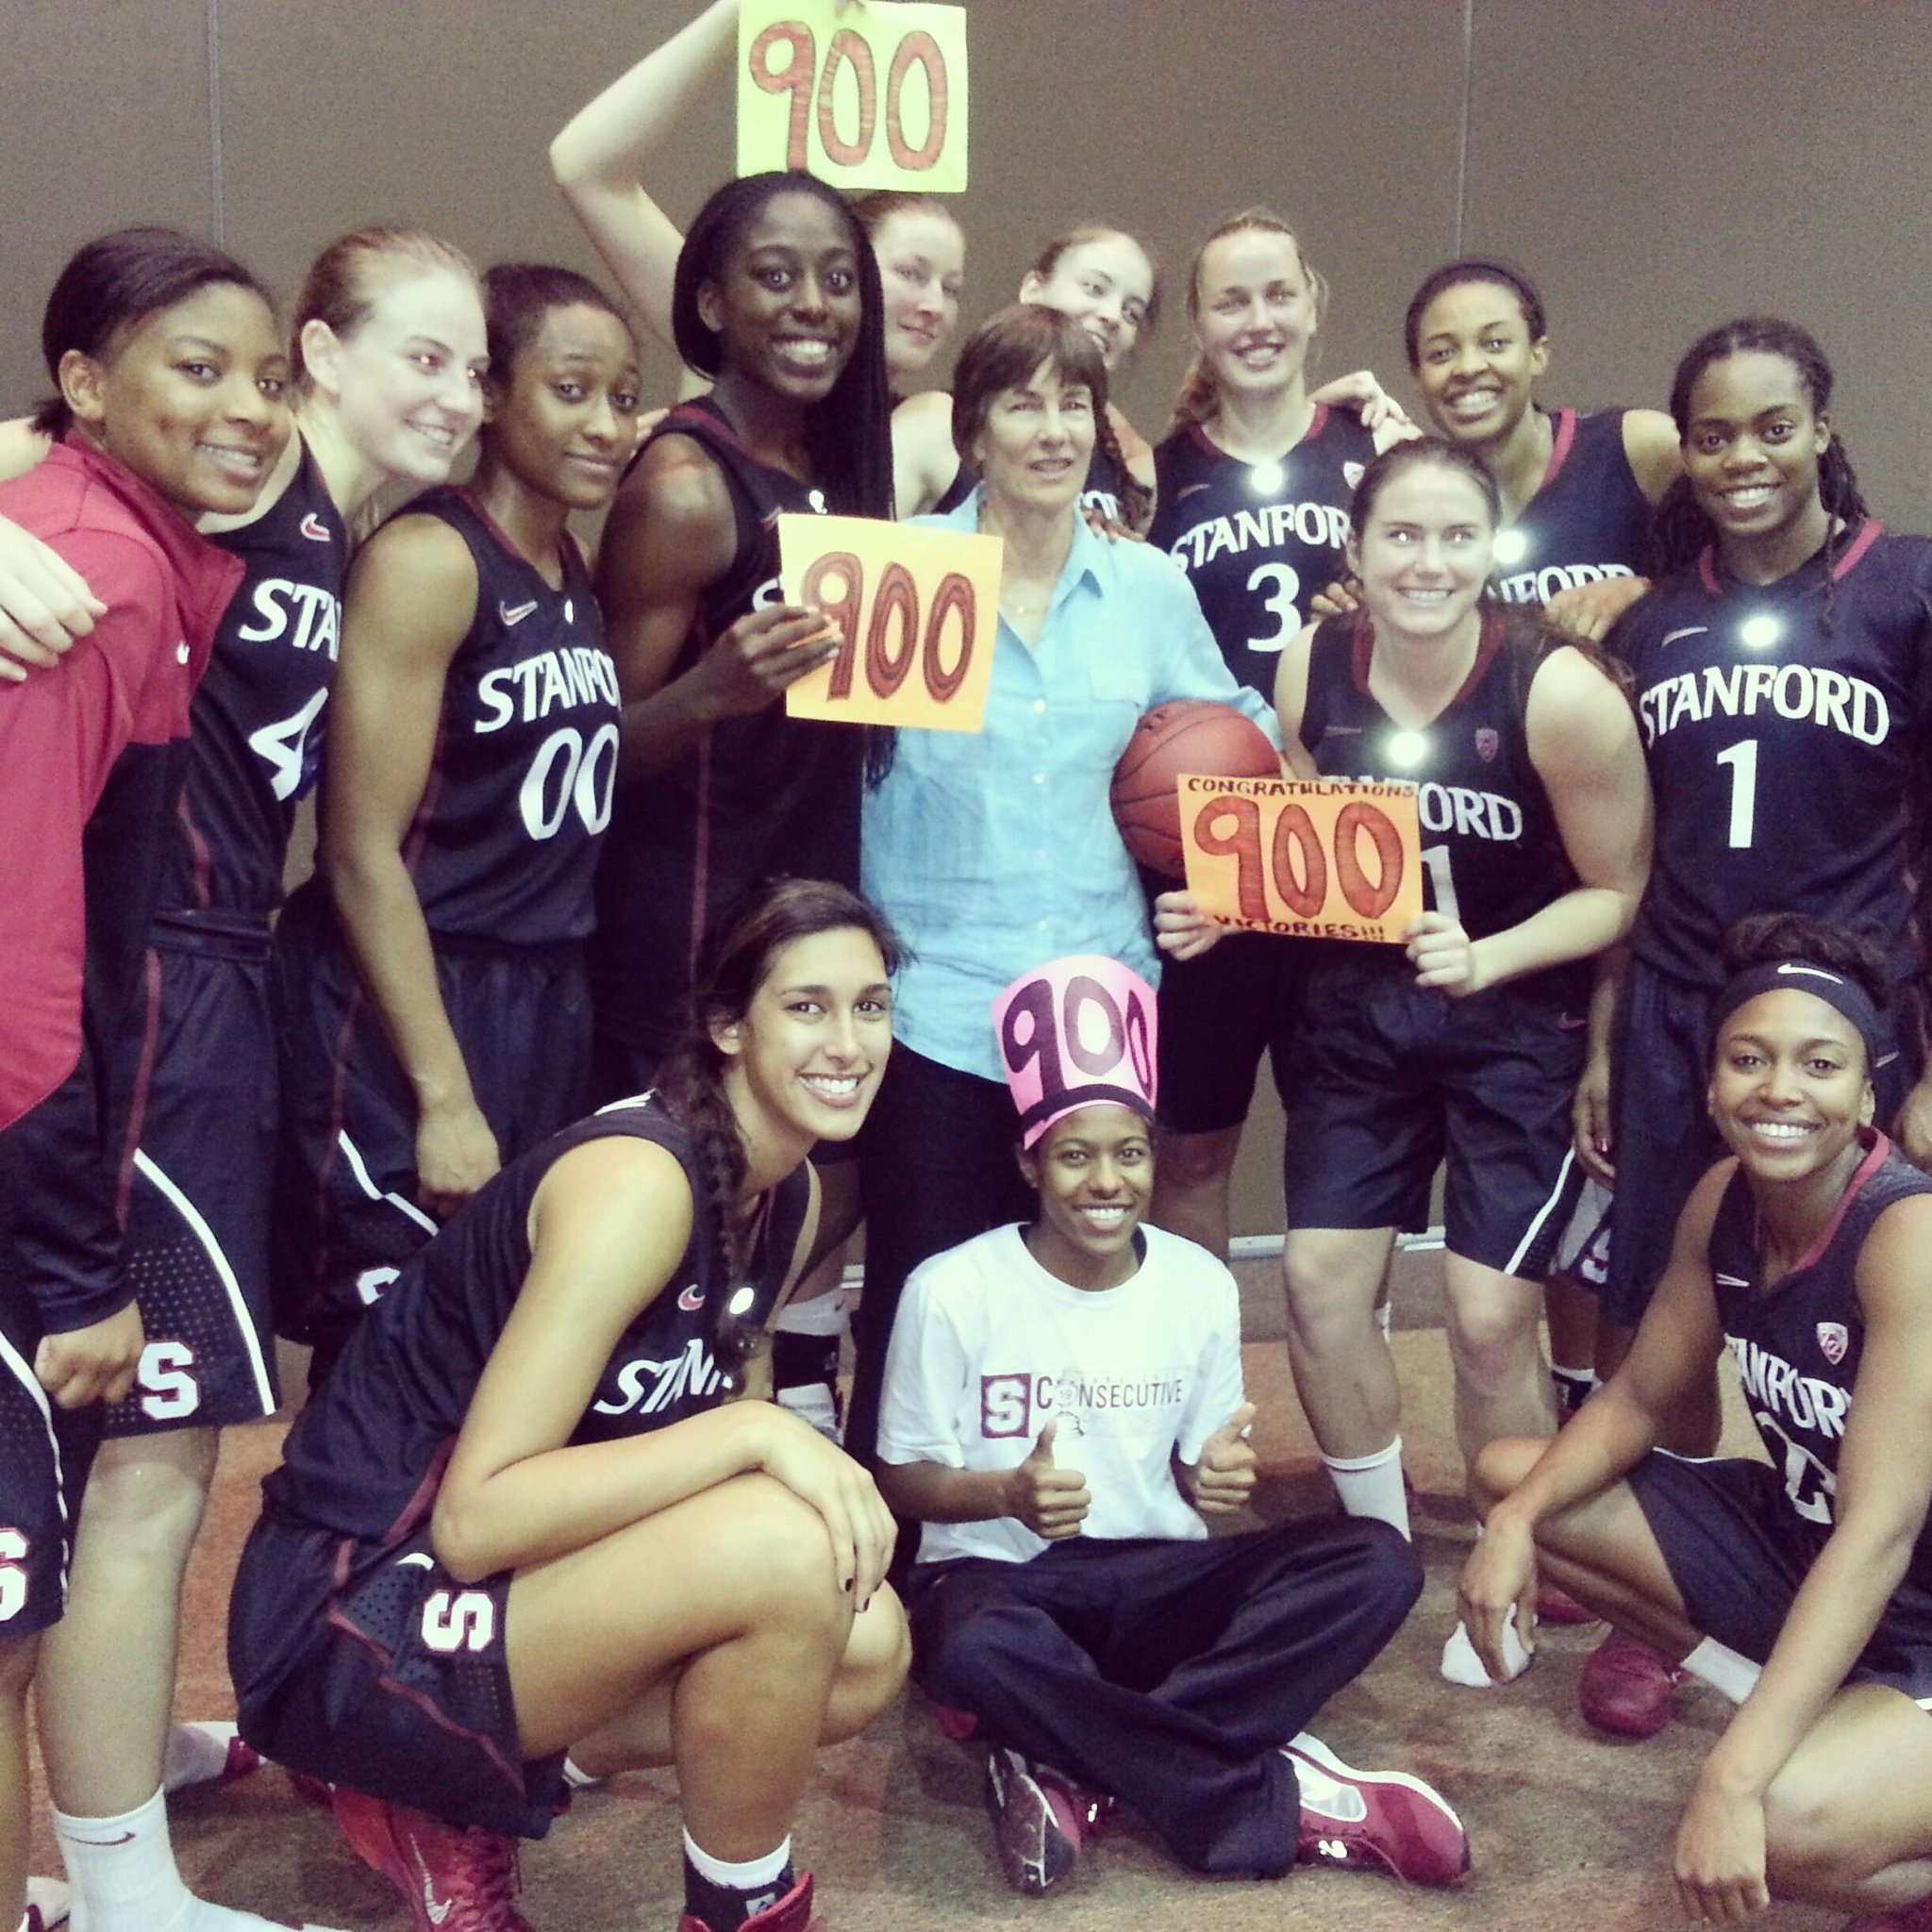 Stanford Coach Getting 900